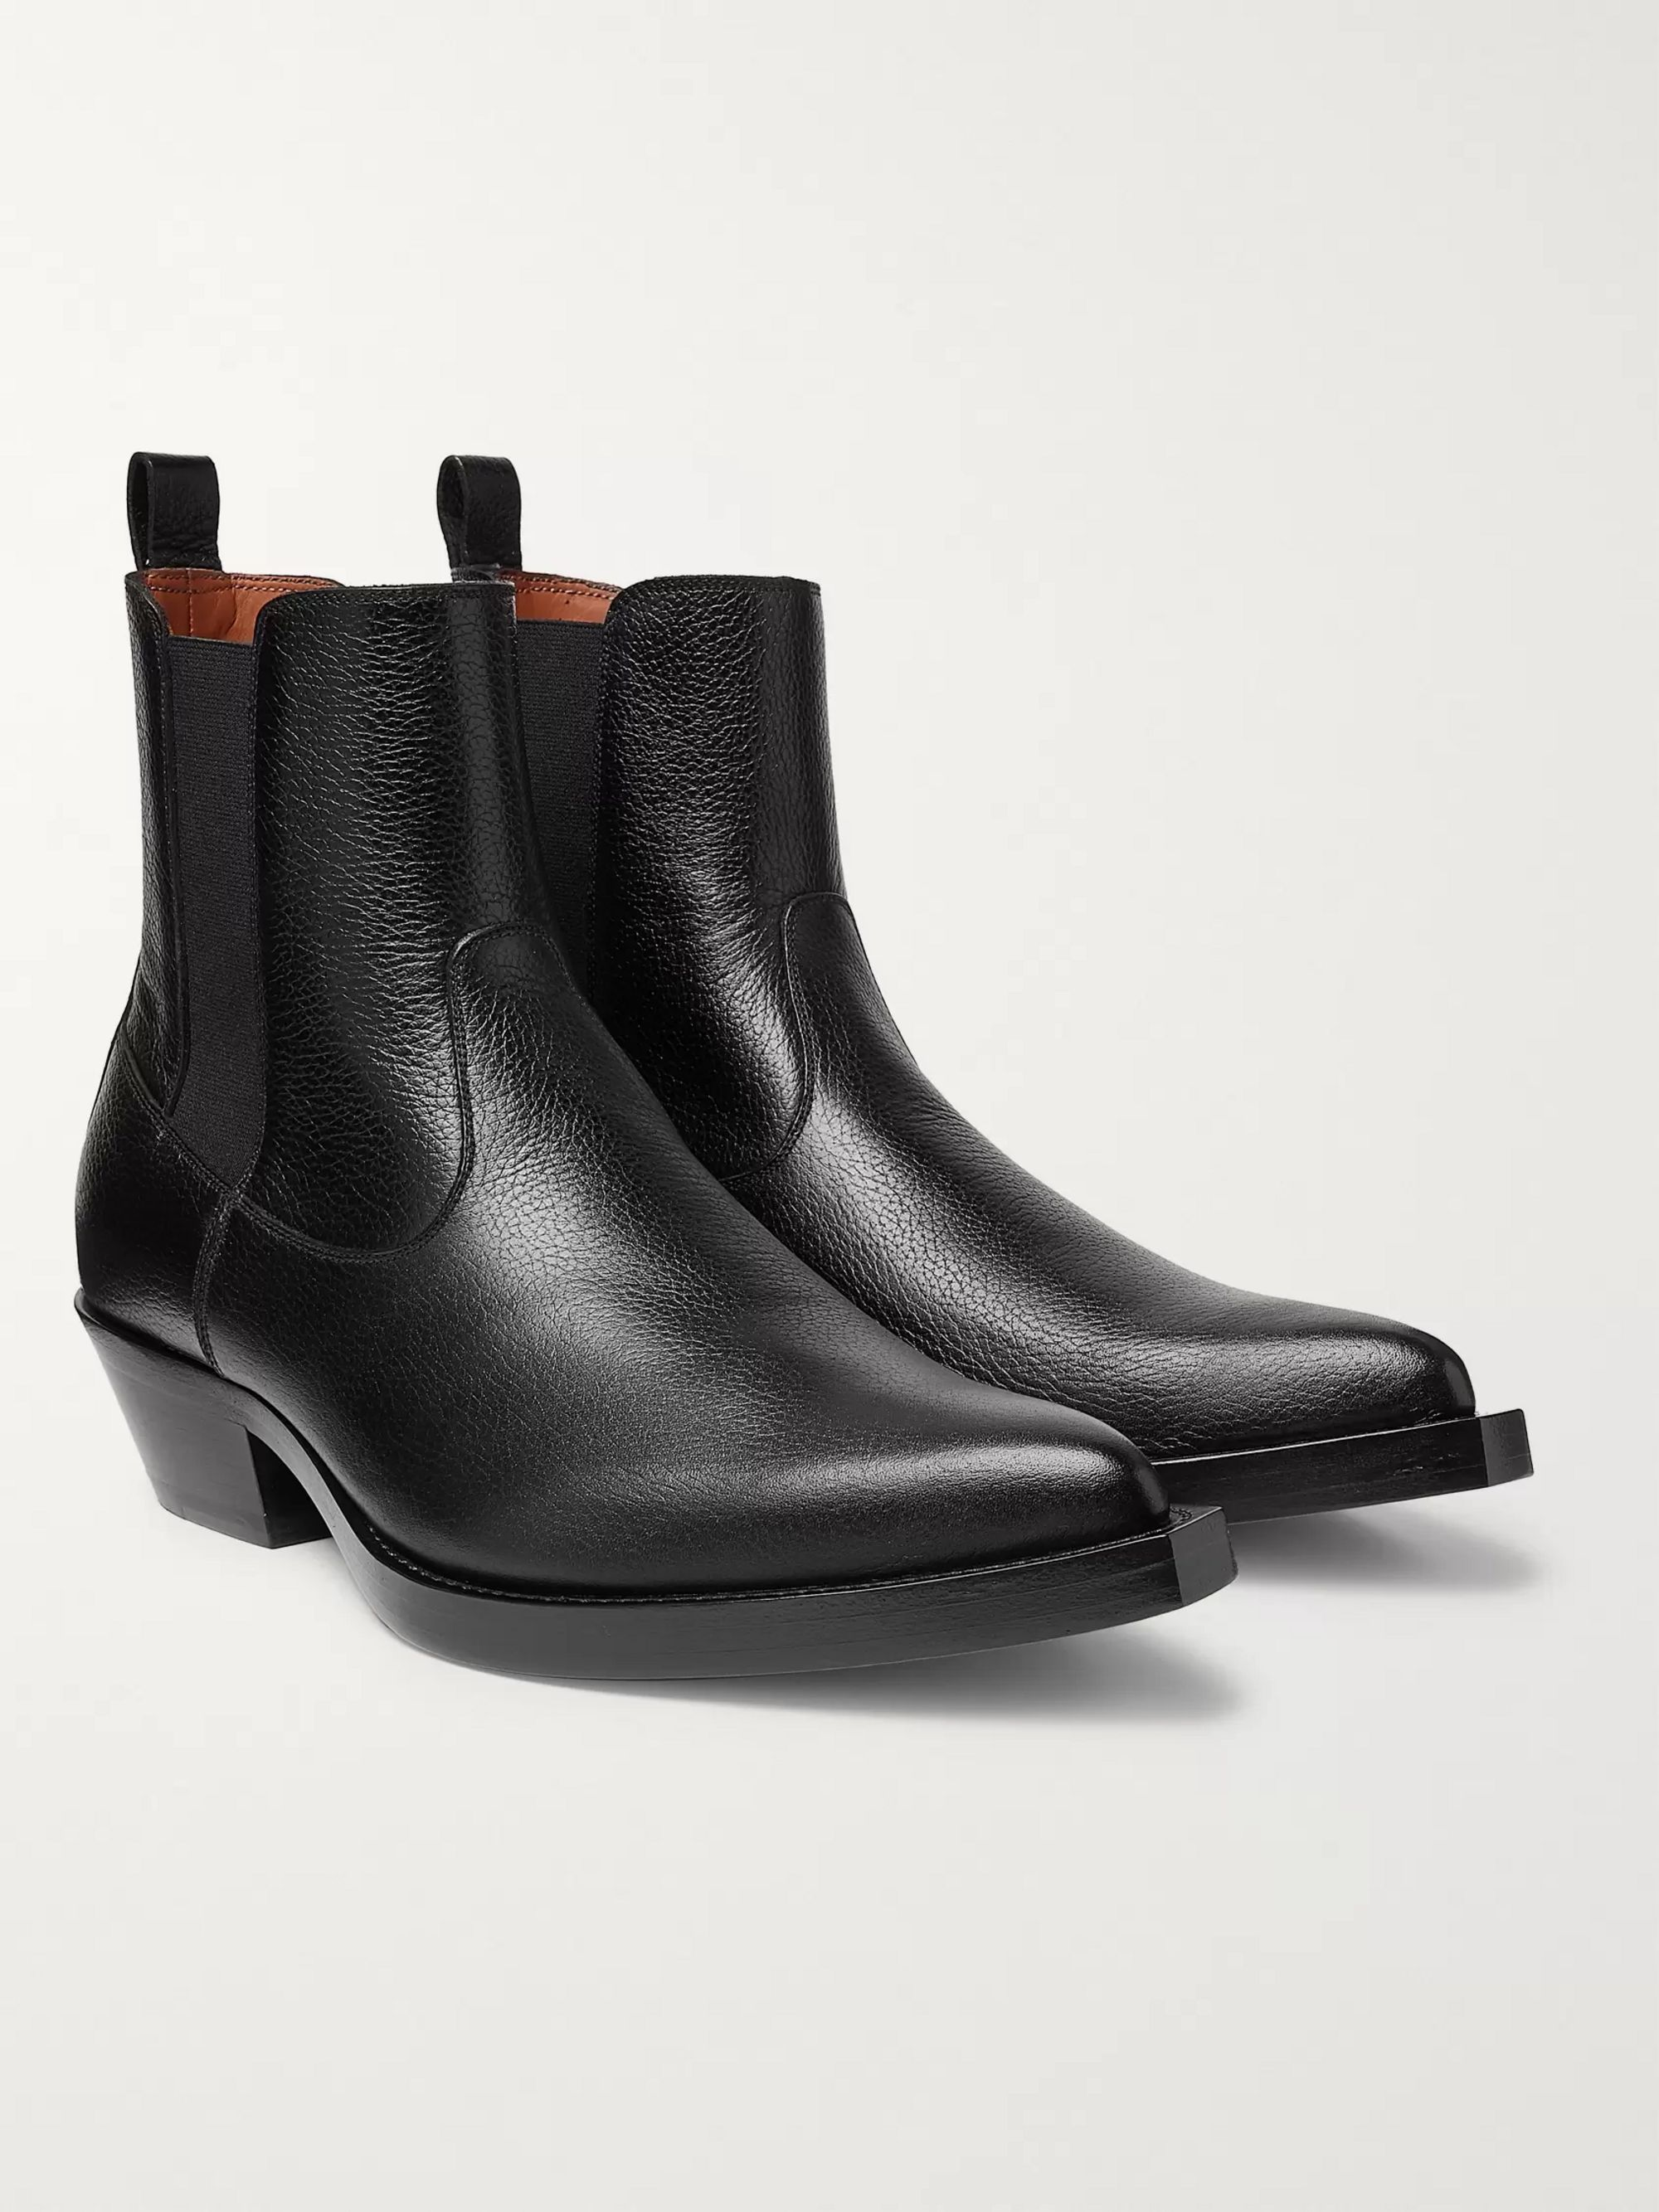 Givenchy Texas Full-Grain Leather Chelsea Boots